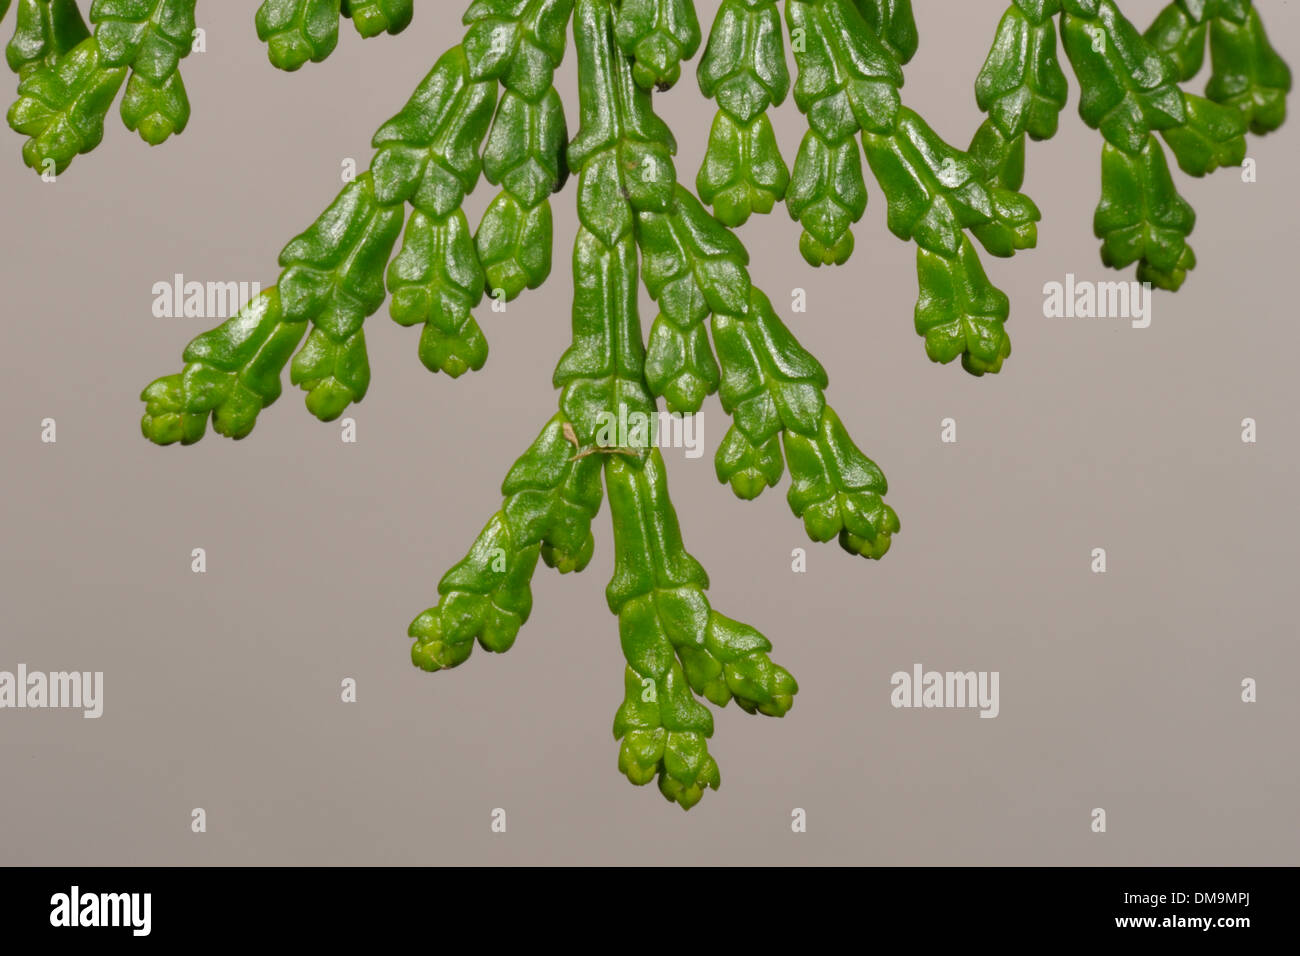 Hinoki Cypress, Chamaecyparis obtusa, Leaves - Stock Image